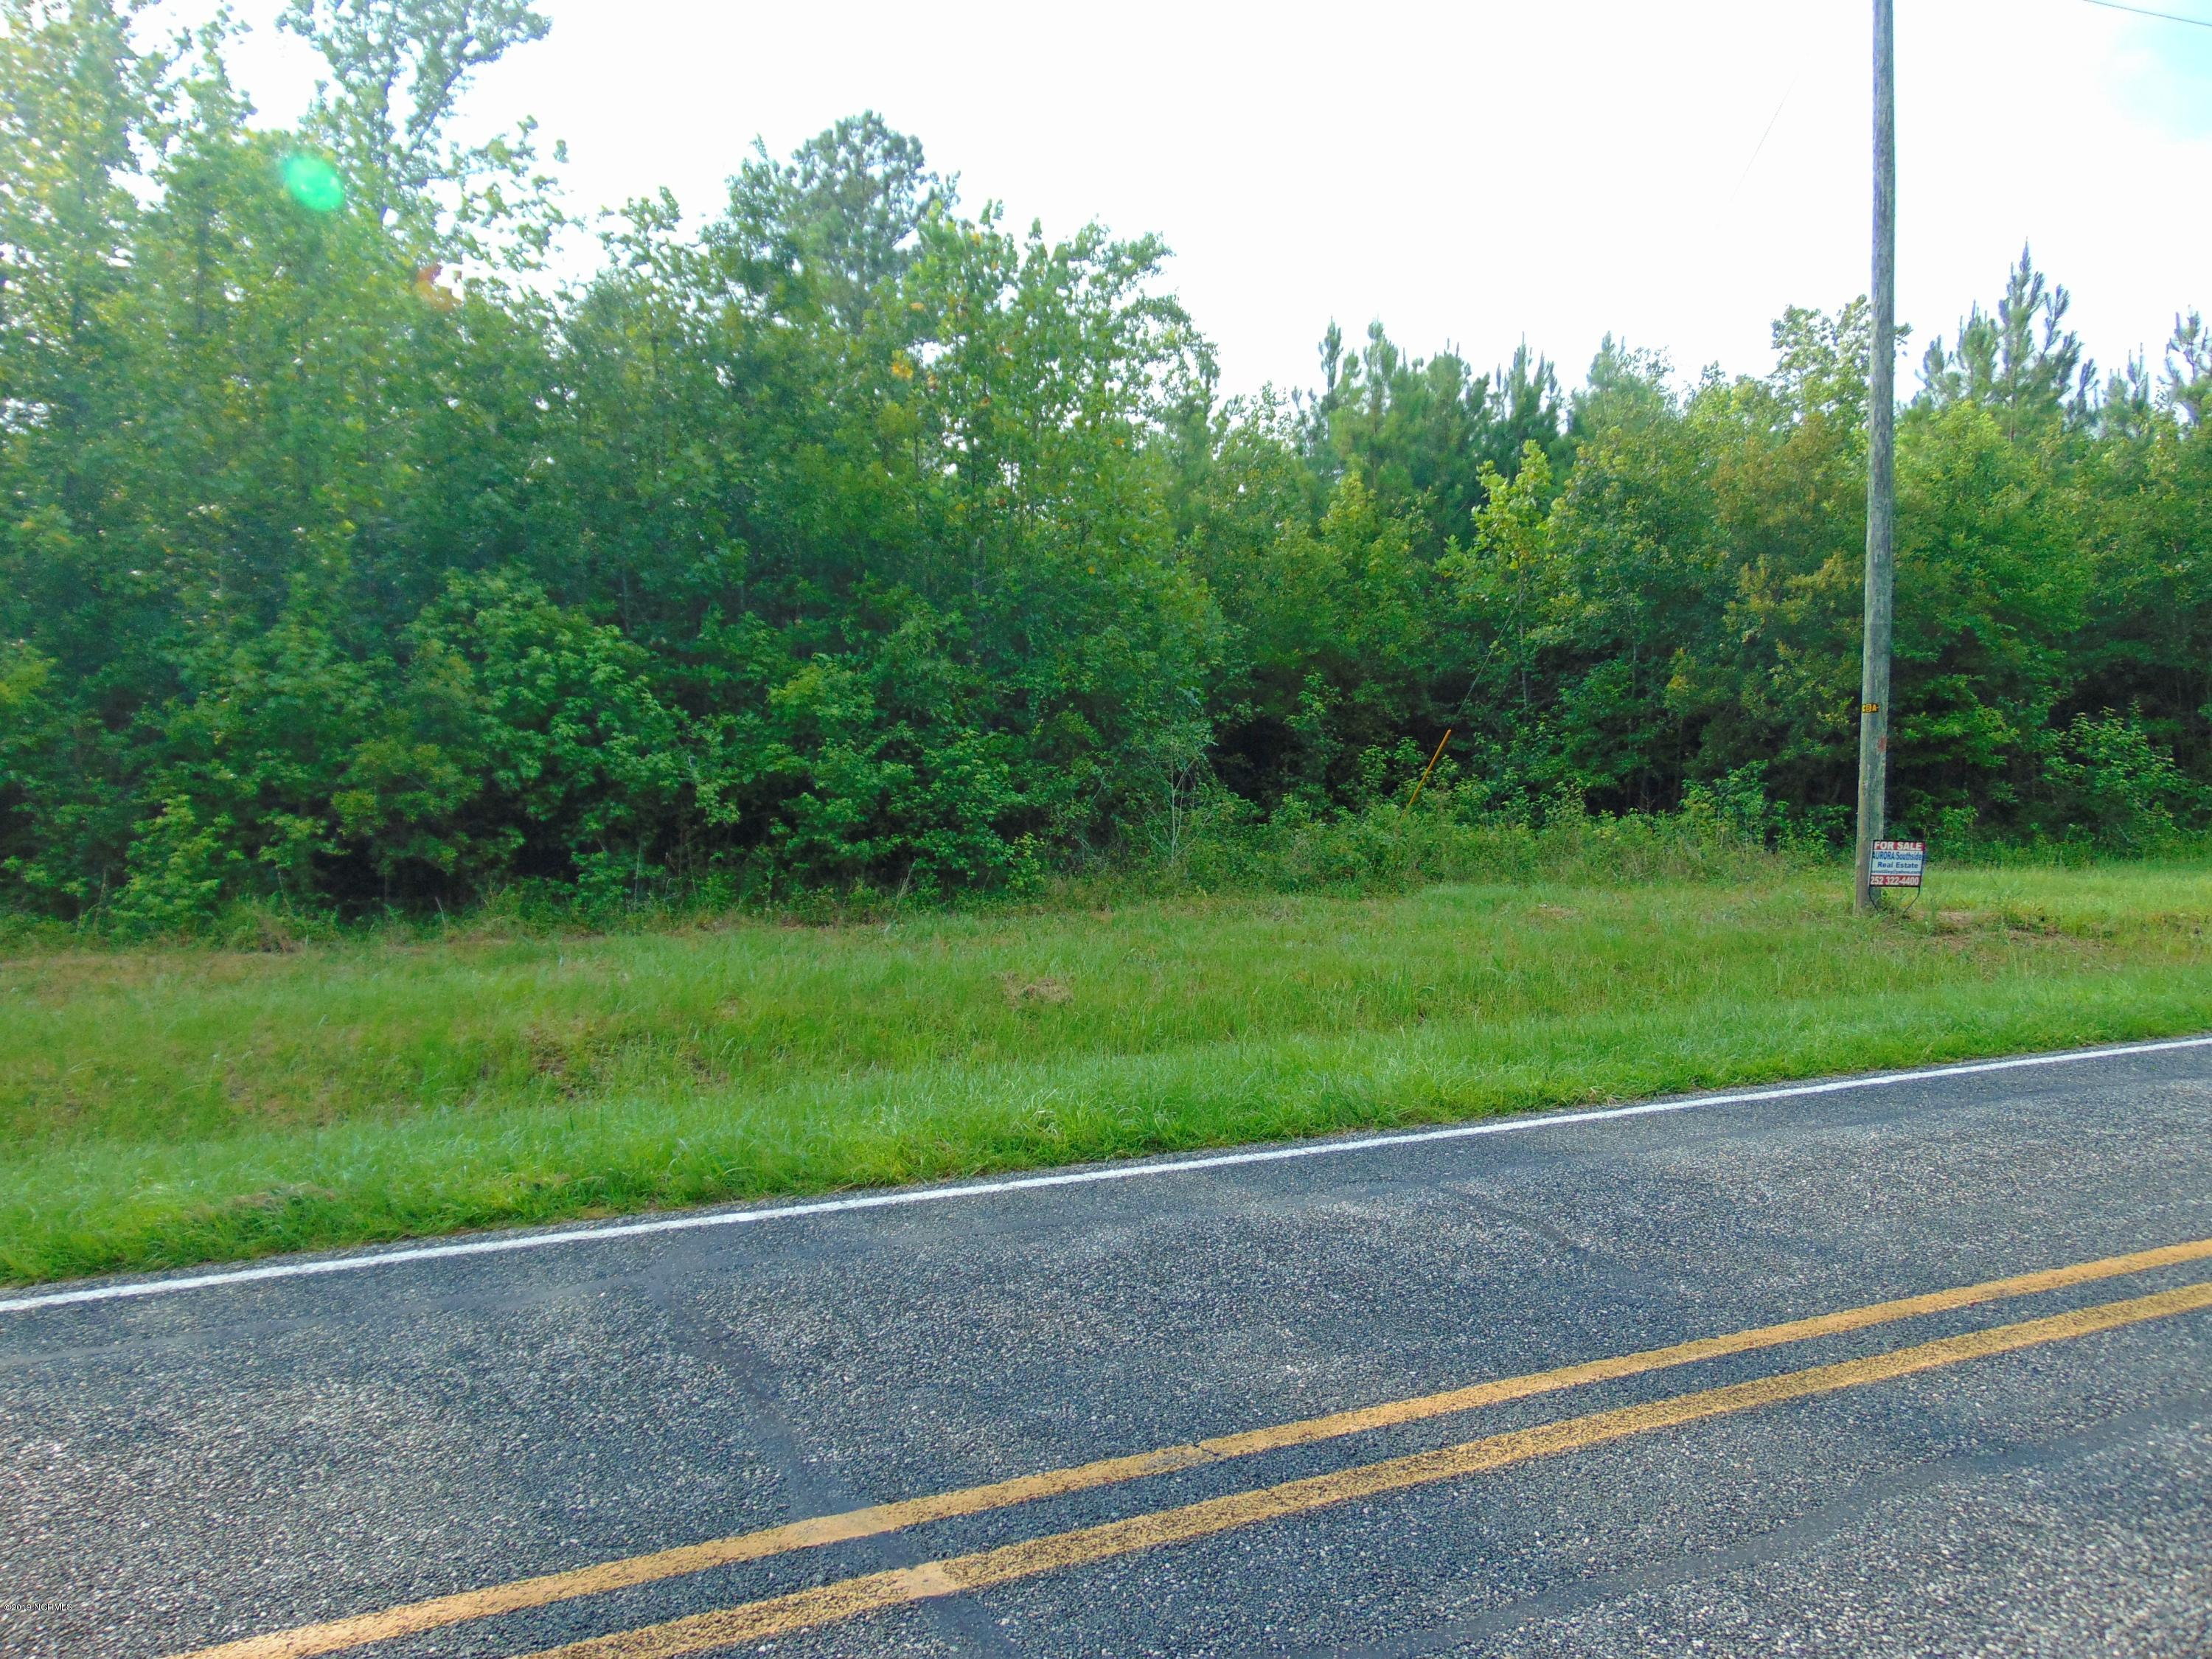 00 1103 State Road, Blounts Creek, North Carolina 27814, ,Wooded,For sale,1103,100177515